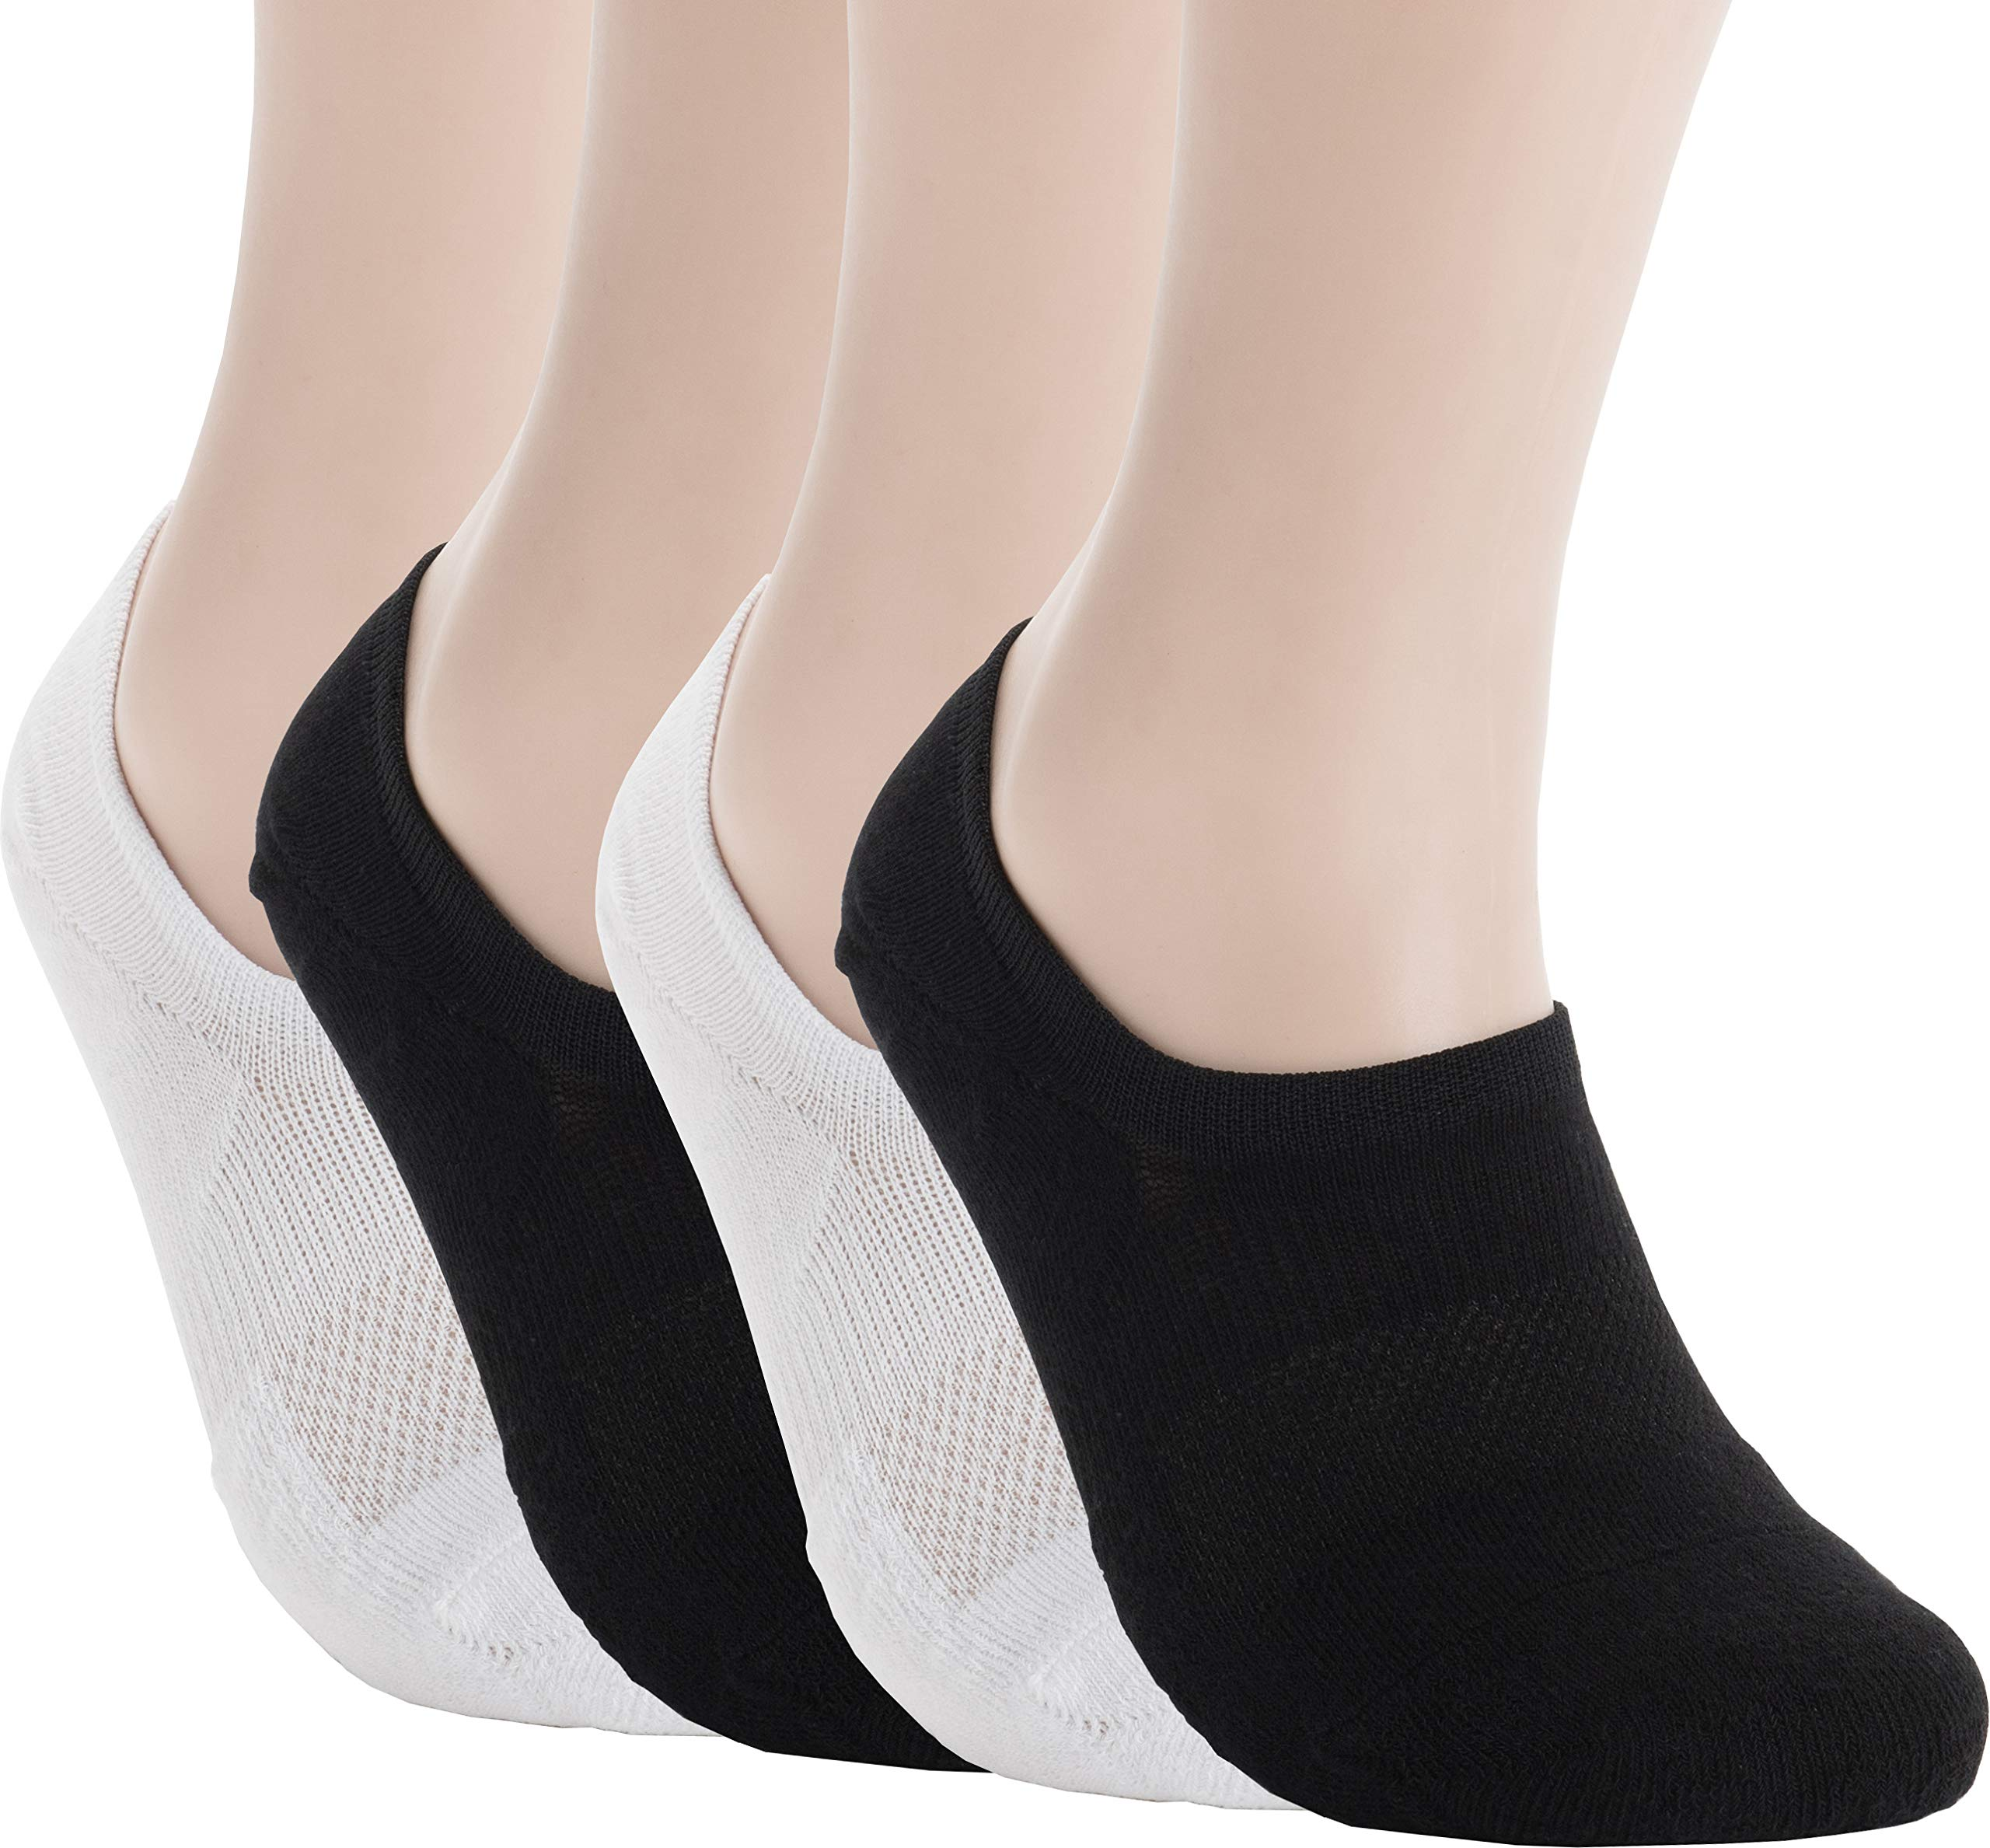 eb8dc5e676 Pro Mountain No Show Flat Cushion Athletic Cotton Footies Sneakers Sports  Socks product image